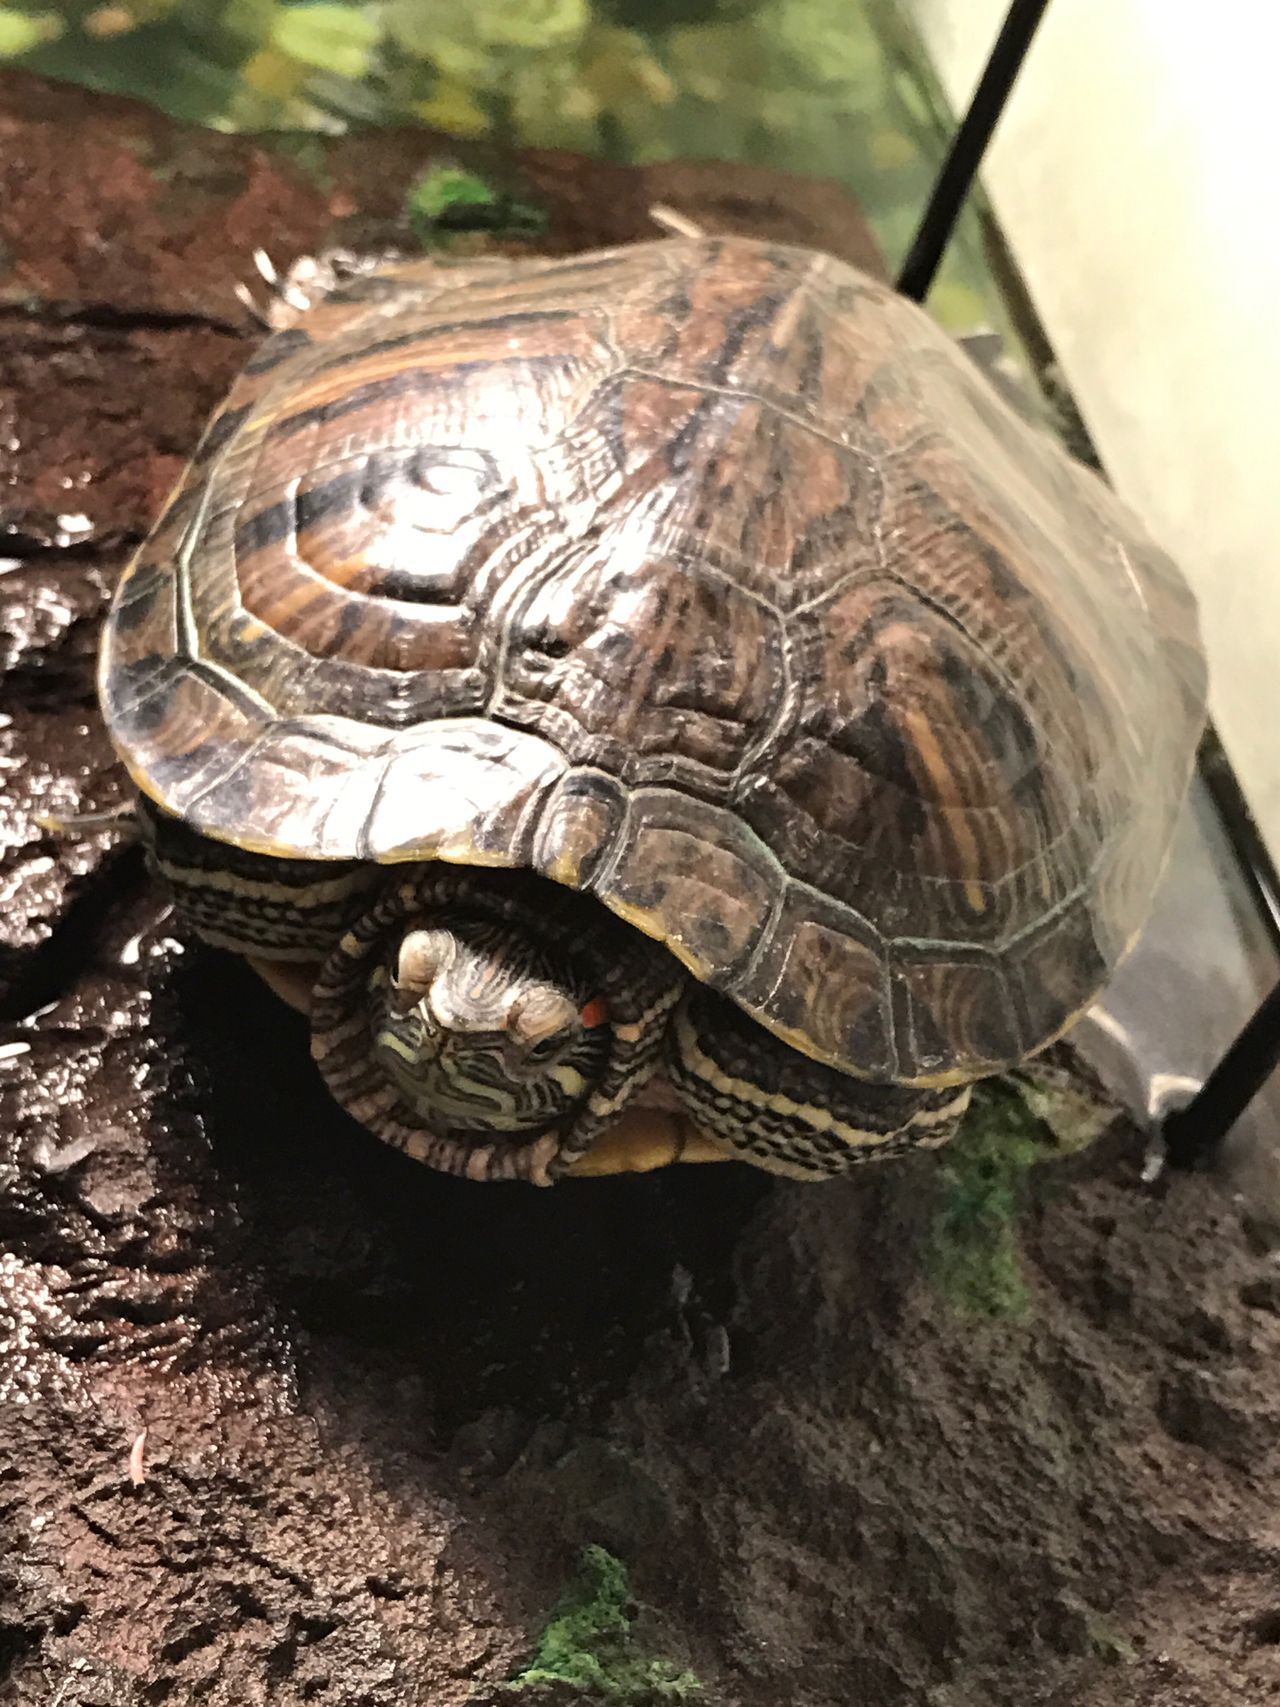 Linda The Turtle 🐢 Tortoise Shell Tortoise Animal Themes Reptile Animals In The Wild One Animal Animal Shell Wildlife Protection No People Close-up Outdoors Day Animal Wildlife Nature Shield